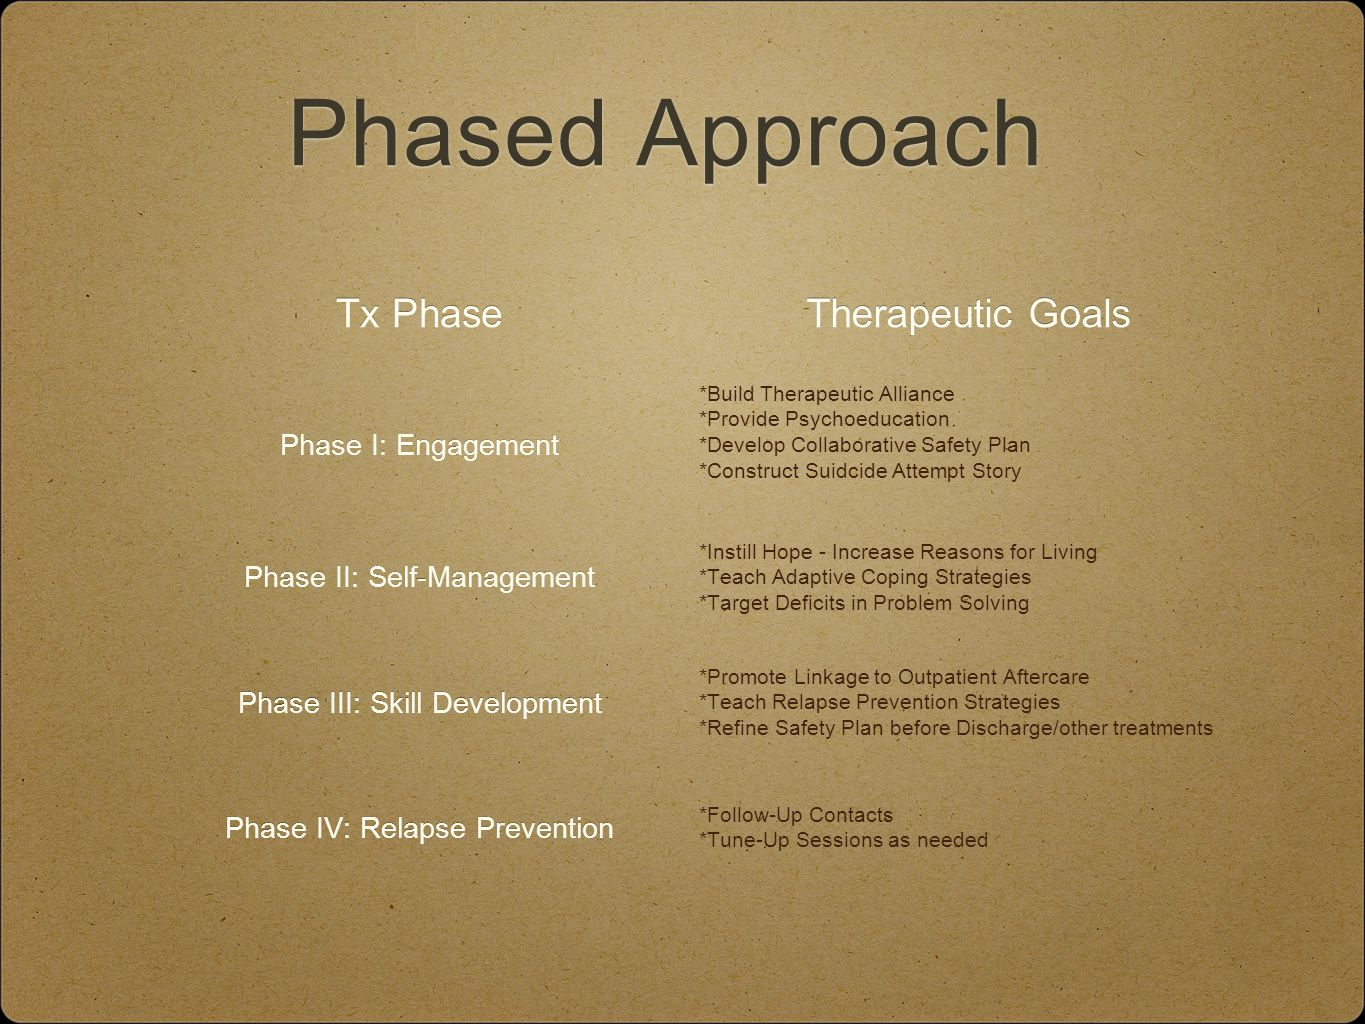 Phased Approach Tx Phase Therapeutic Goals Phase I: Engagement *Build Therapeutic Alliance *Provide Psychoeducation *Develop Collaborative Safety Plan *Construct Suidcide Attempt Story Phase II: Self-Management *Instill Hope - Increase Reasons for Living *Teach Adaptive Coping Strategies *Target Deficits in Problem Solving Phase III: Skill Development *Promote Linkage to Outpatient Aftercare *Teach Relapse Prevention Strategies *Refine Safety Plan before Discharge/other treatments Phase IV: Relapse Prevention *Follow-Up Contacts *Tune-Up Sessions as needed